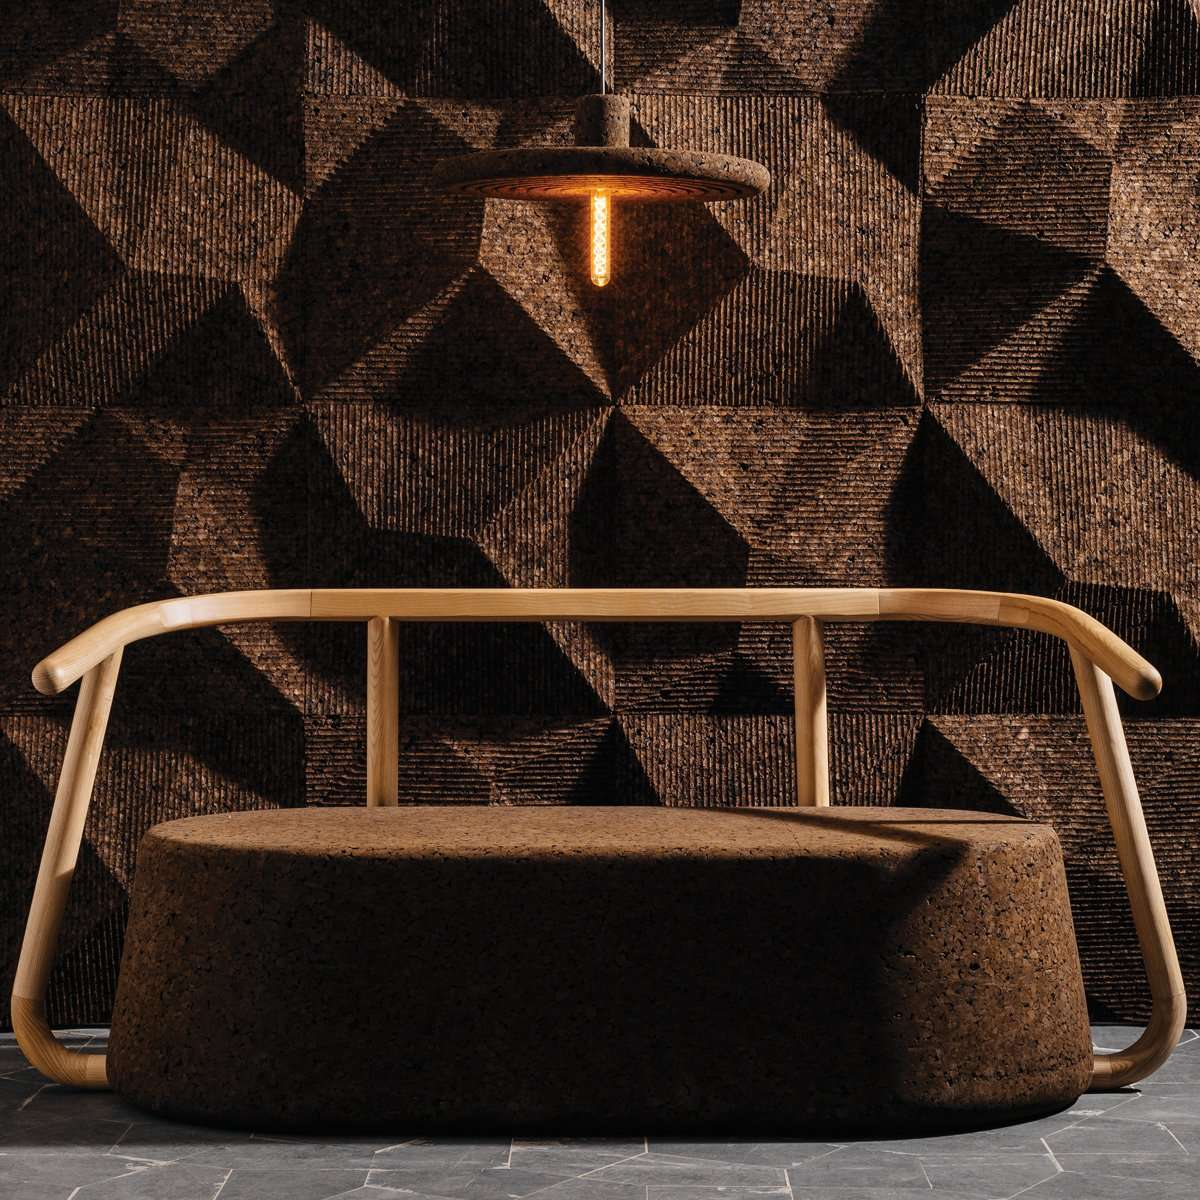 GENCORK Delaunay and two-seater chair